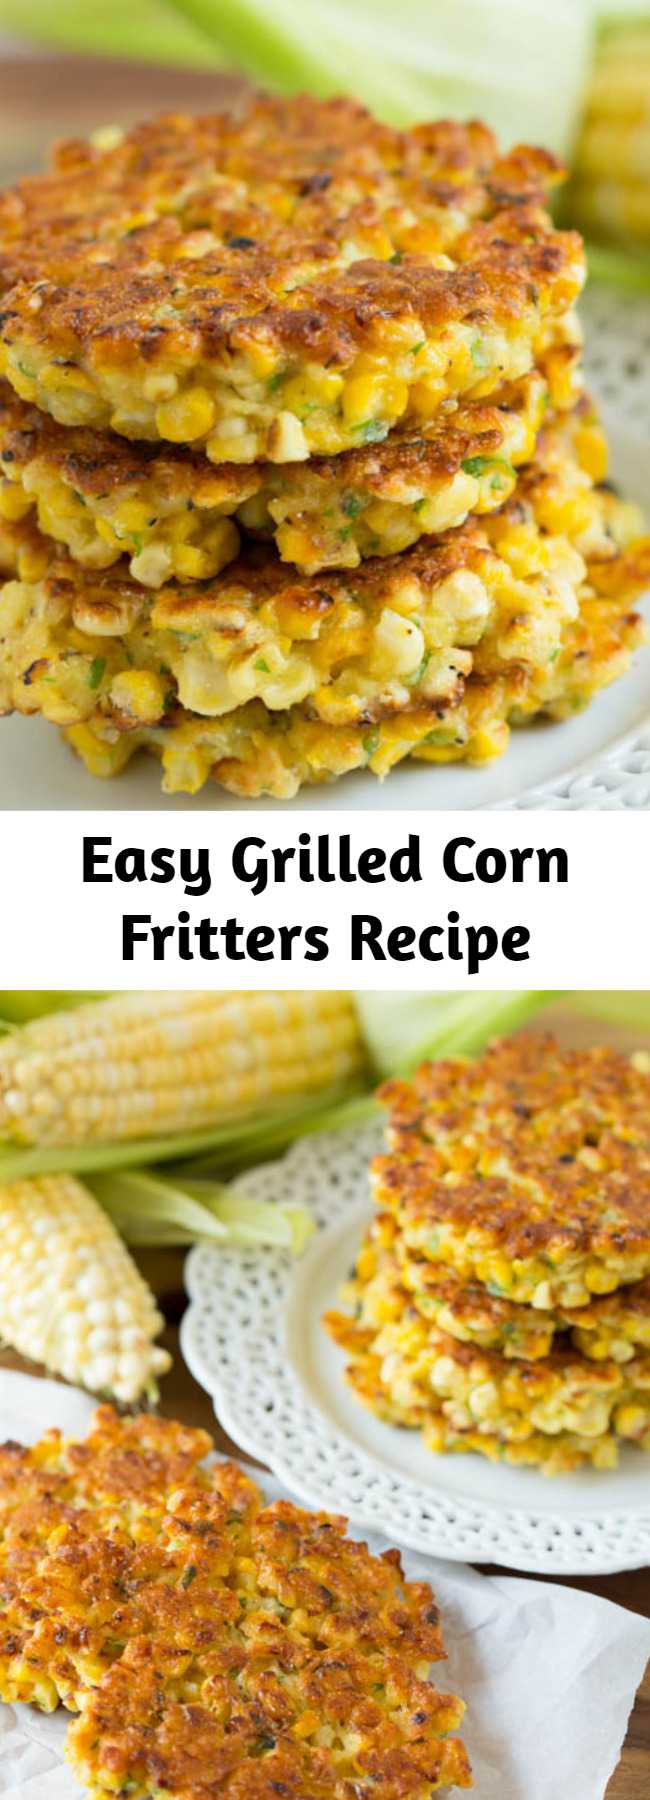 Easy Grilled Corn Fritters Recipe - Grilled corn fritters are a great way to use up all that fresh summer corn and a great, new way to eat it too! These little cakes are so easy to put together!